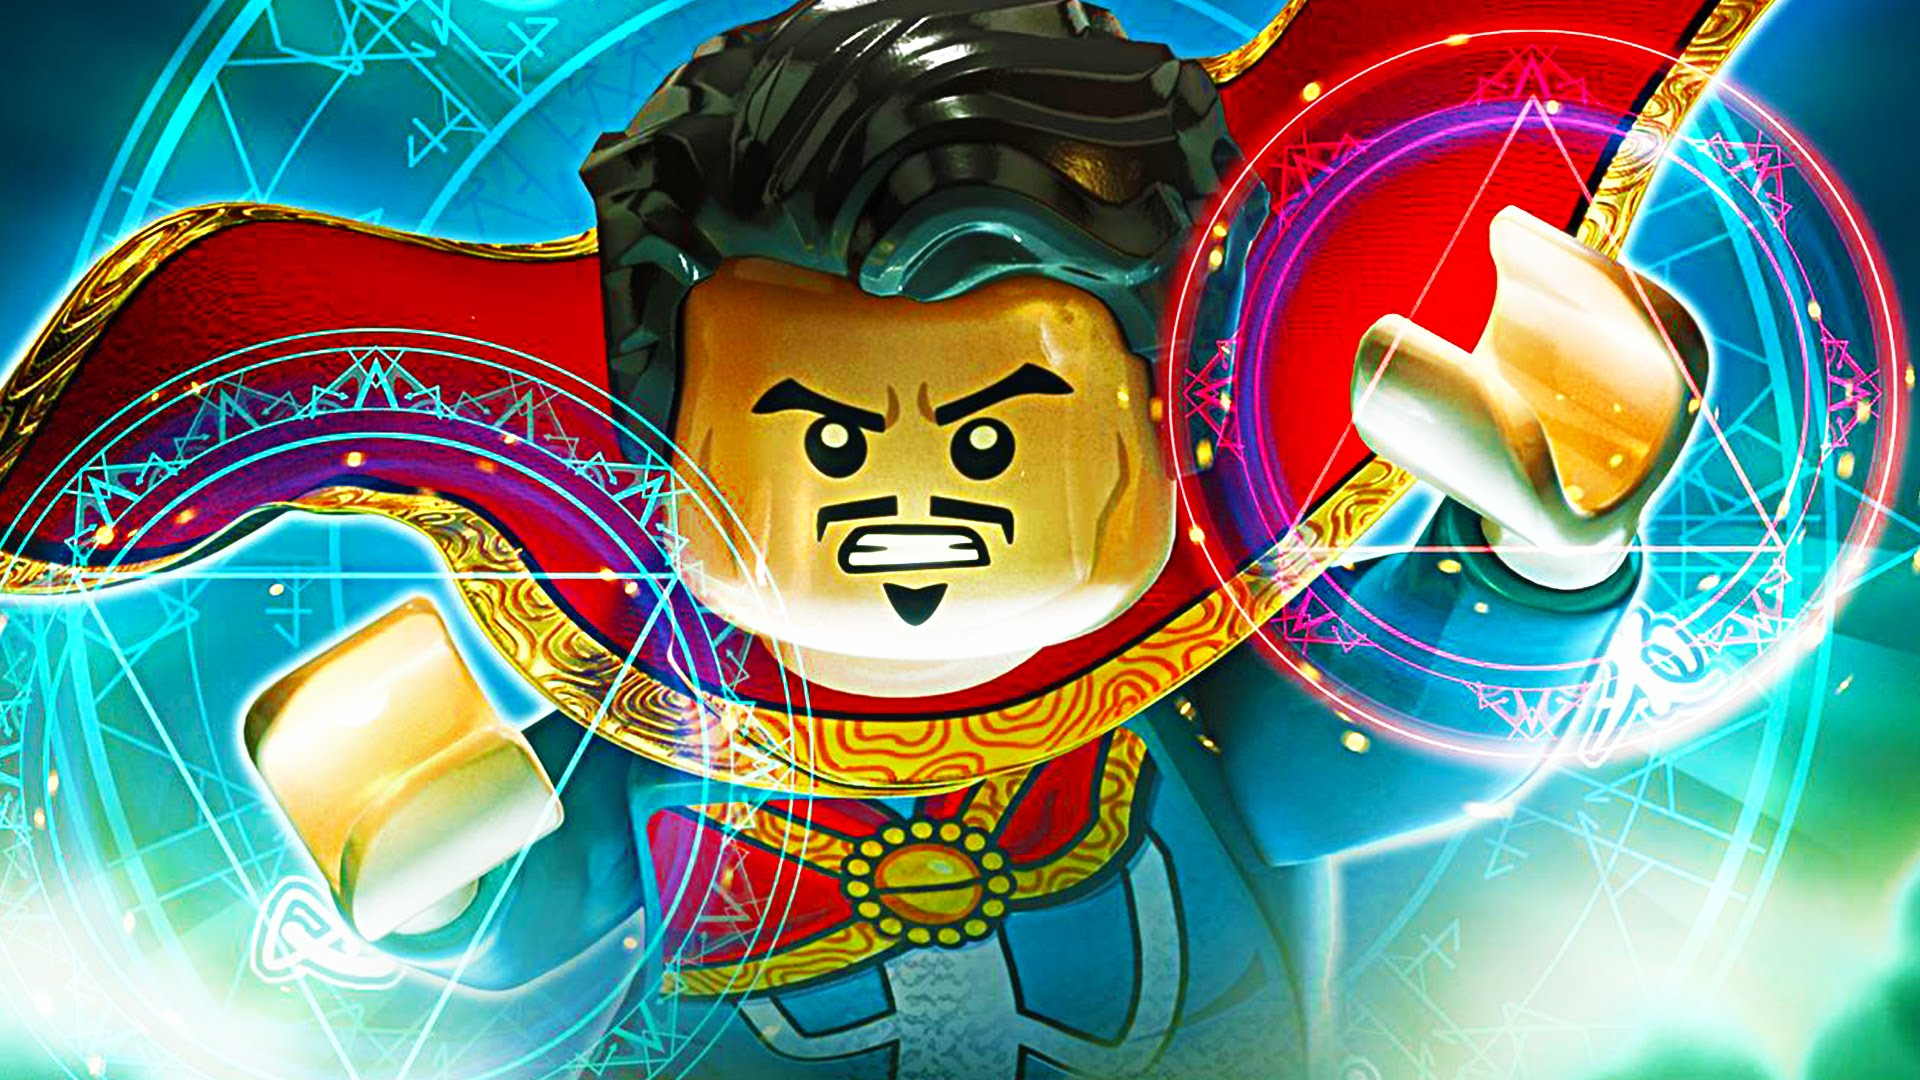 Dr Lego Marvel Superheroes 2 Posters 343015 Hd